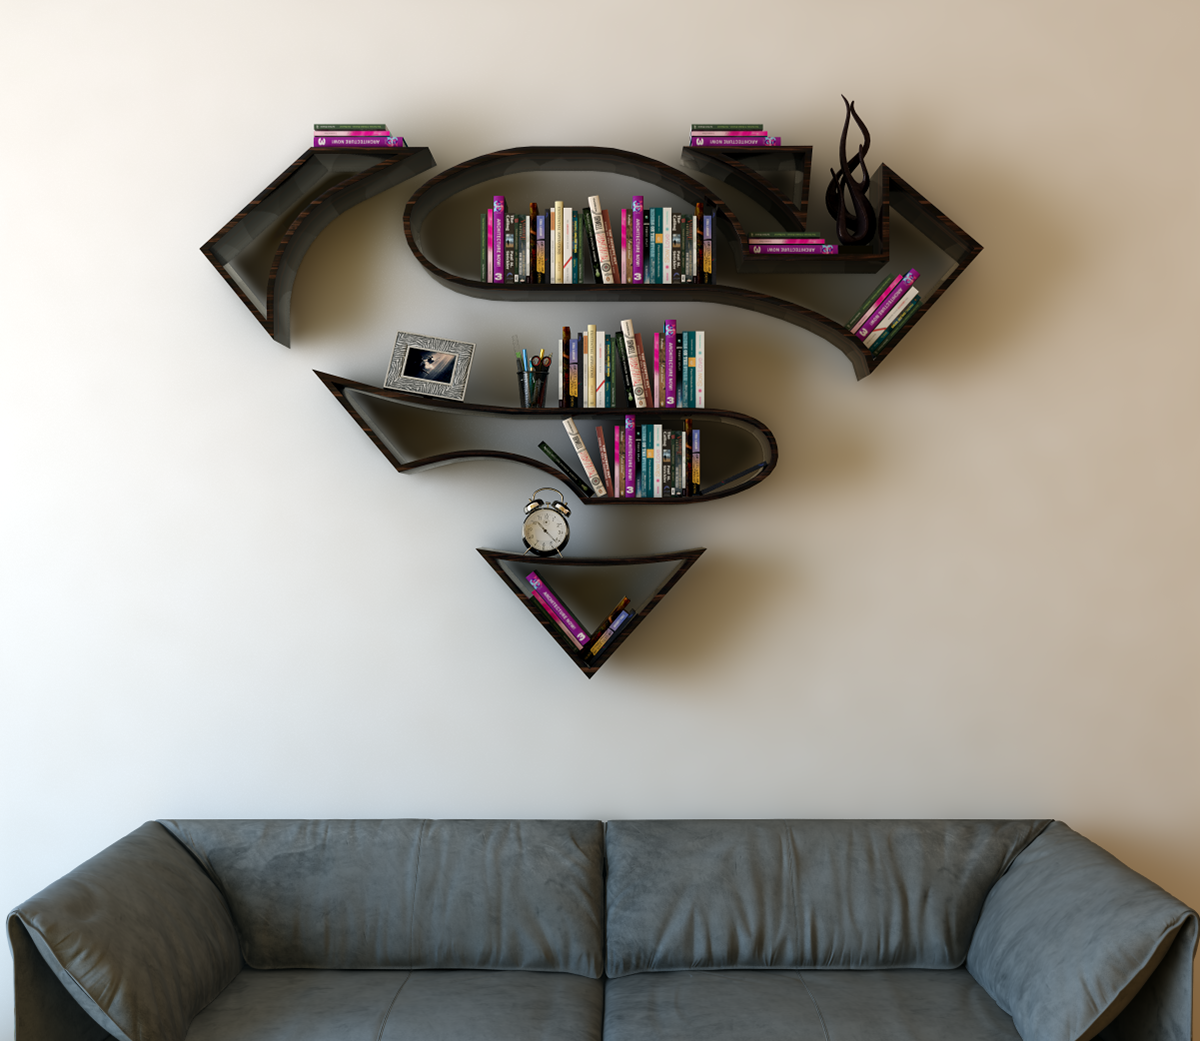 Superman Room Ideas Your Walls Will Love These Superhero 3d Book Shelf Ideas